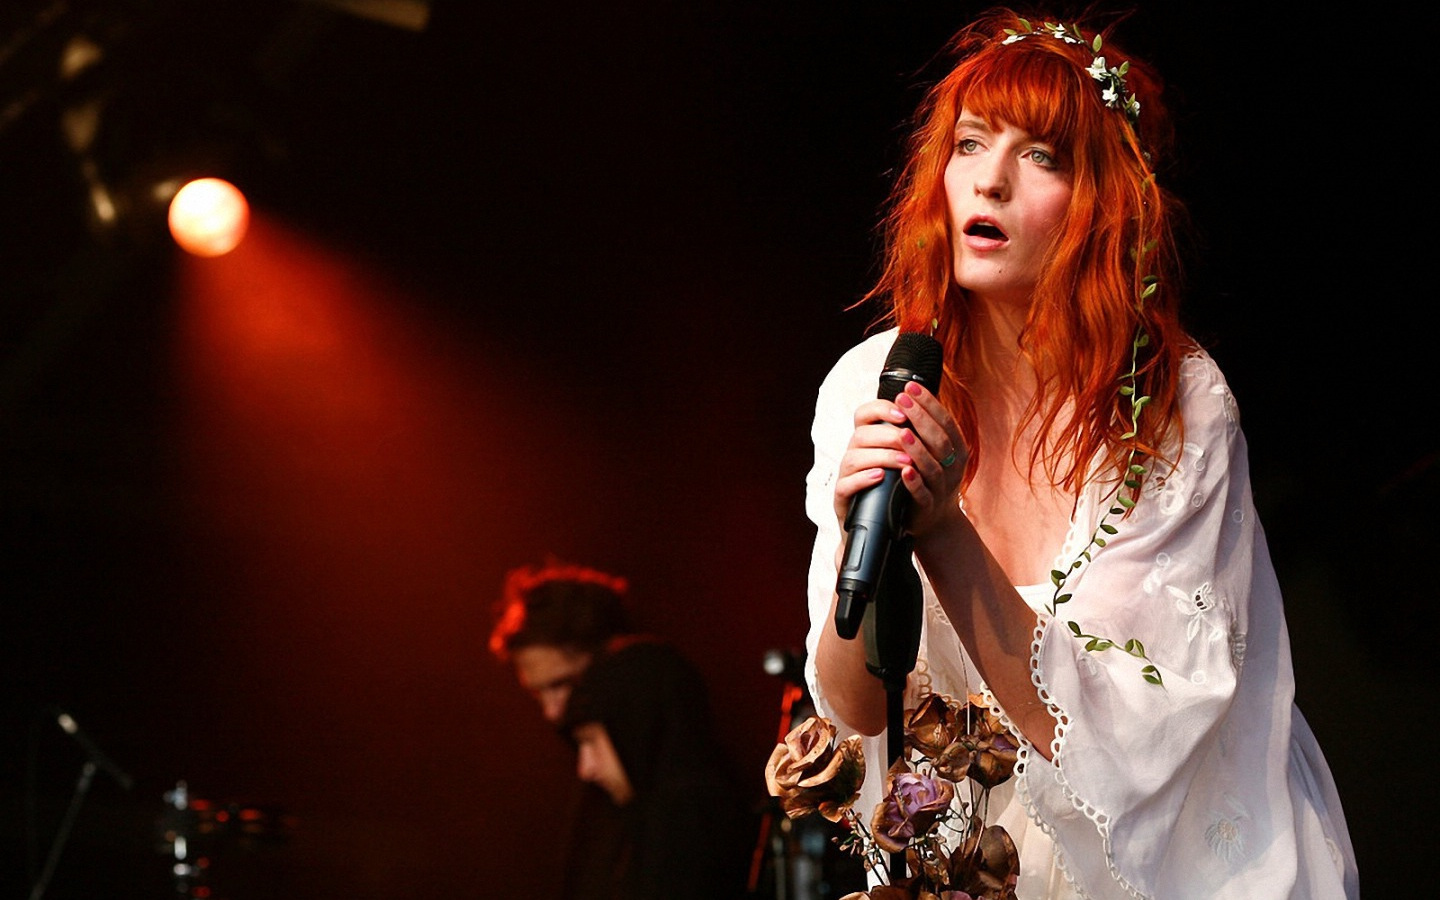 FLORENCE AND THE MACHINE SPOTIFY İÇİN TORI AMOS COVER'LADI